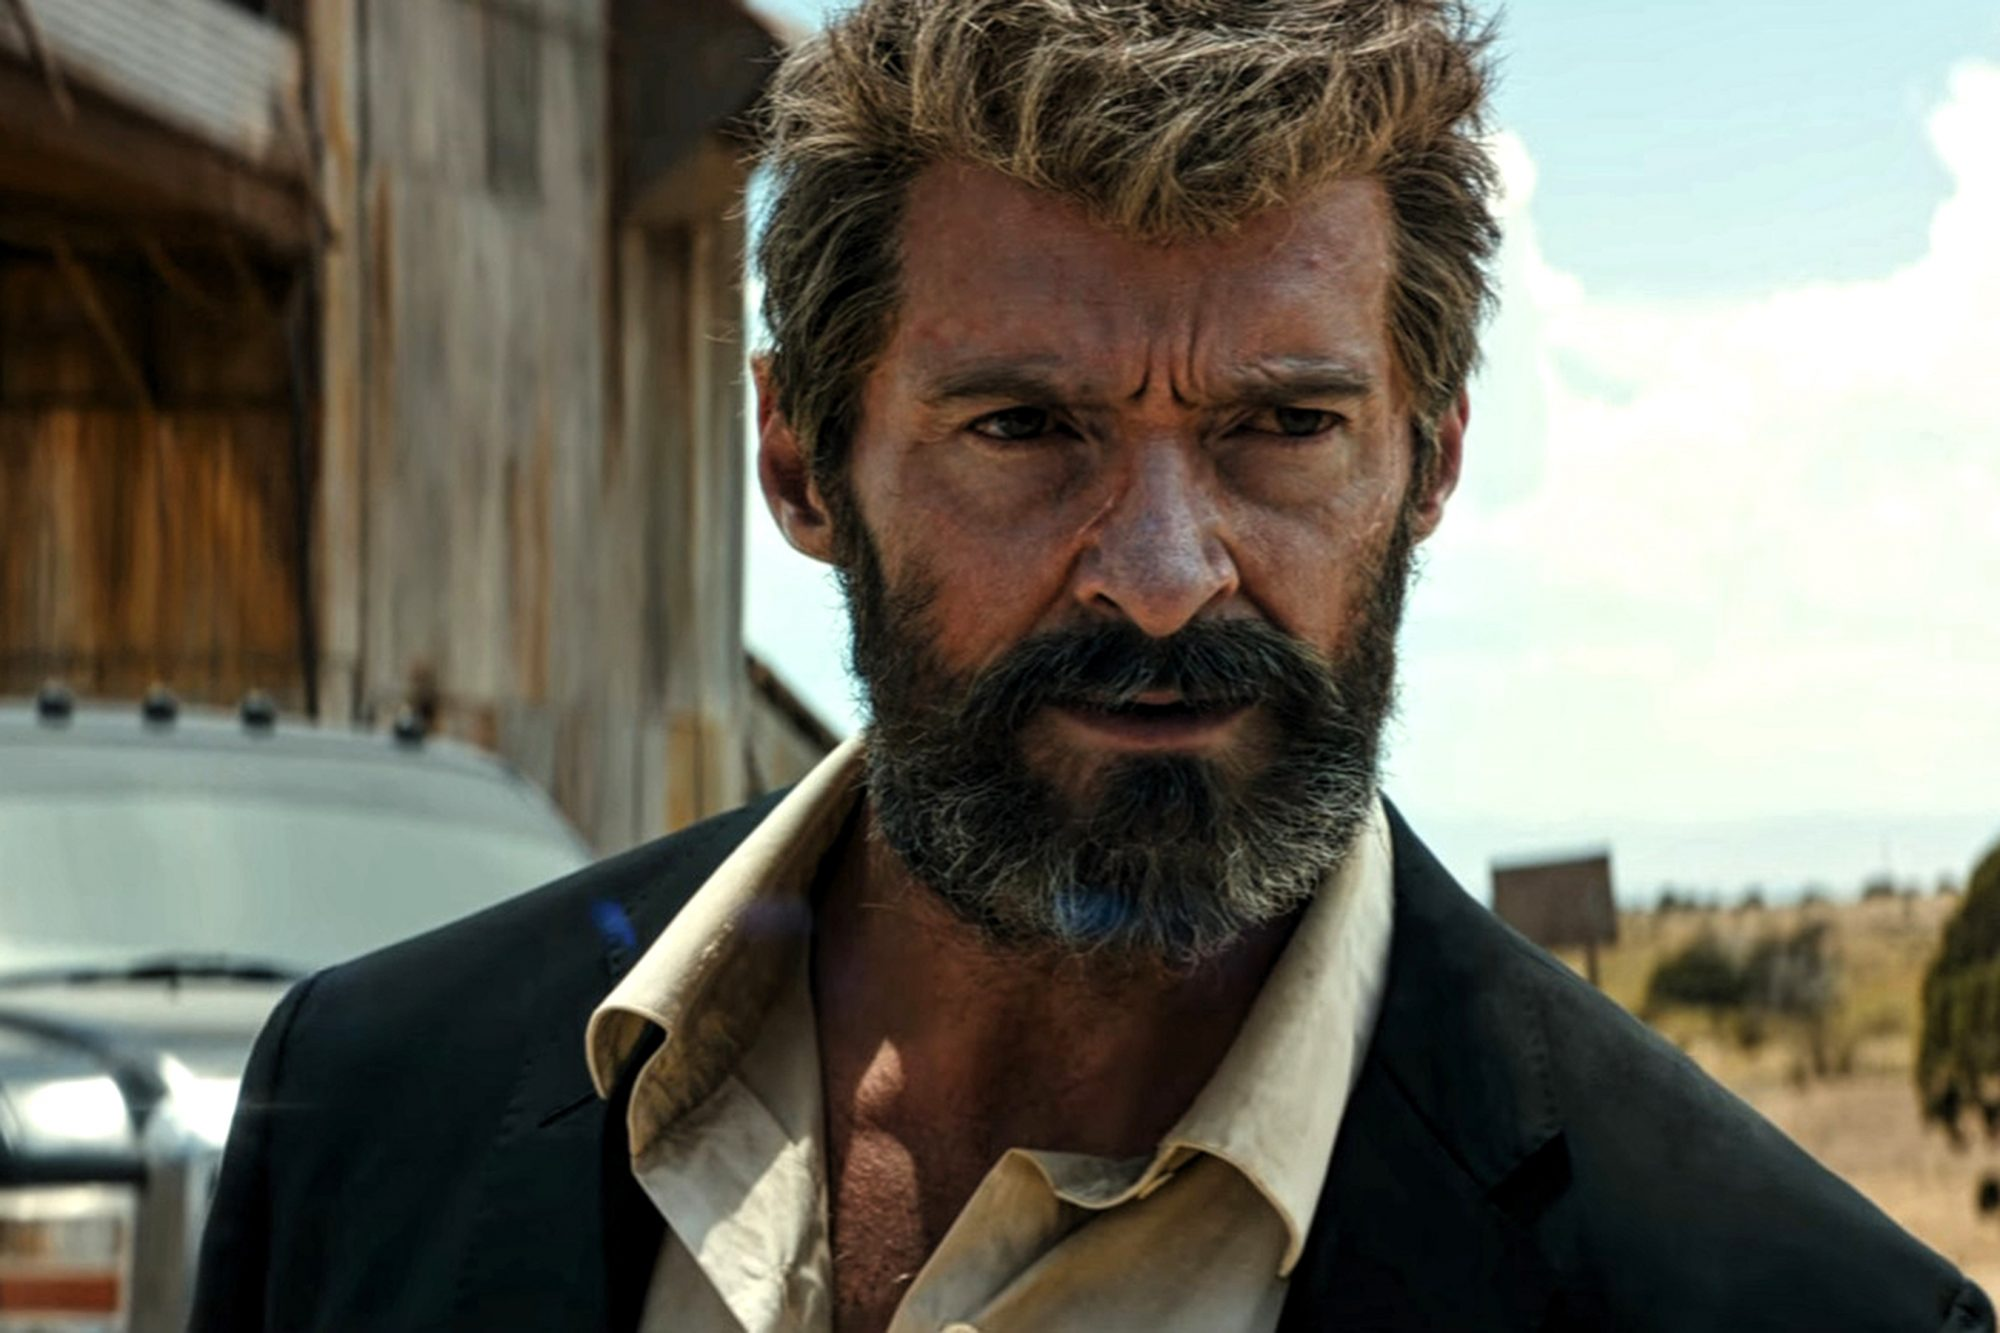 hugh-jackman-as-wolverine-in-logan